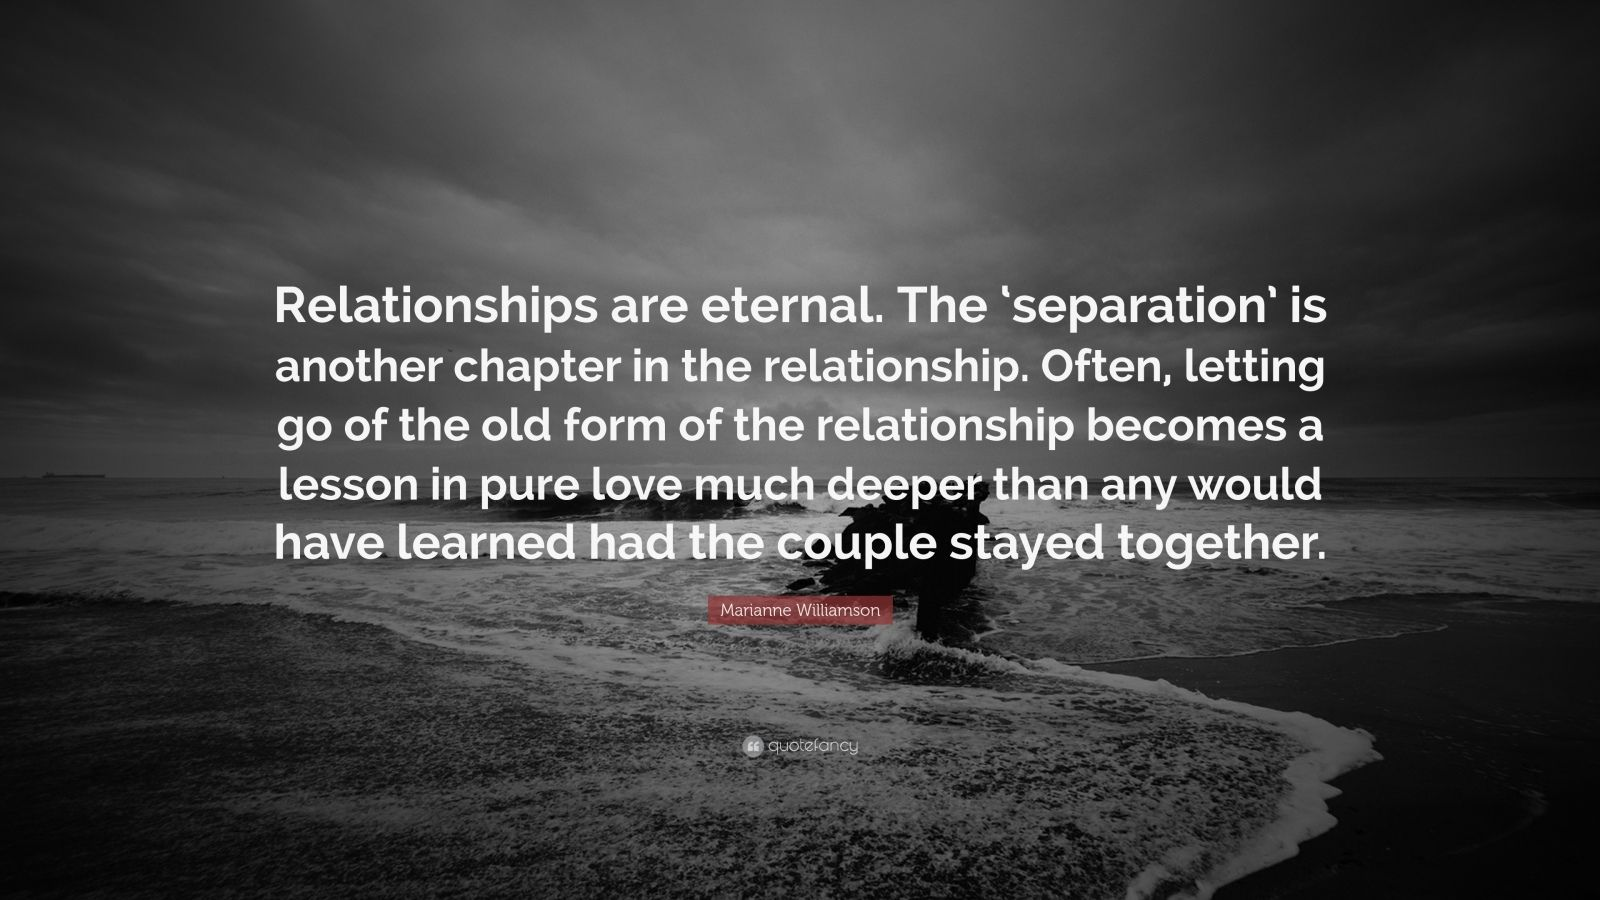 "Marianne Williamson Quote: ""Relationships are eternal. The 'separation' is another chapter in the relationship. Often, letting go of the old form of the relationship becomes a lesson in pure love much deeper than any would have learned had the couple stayed together."""